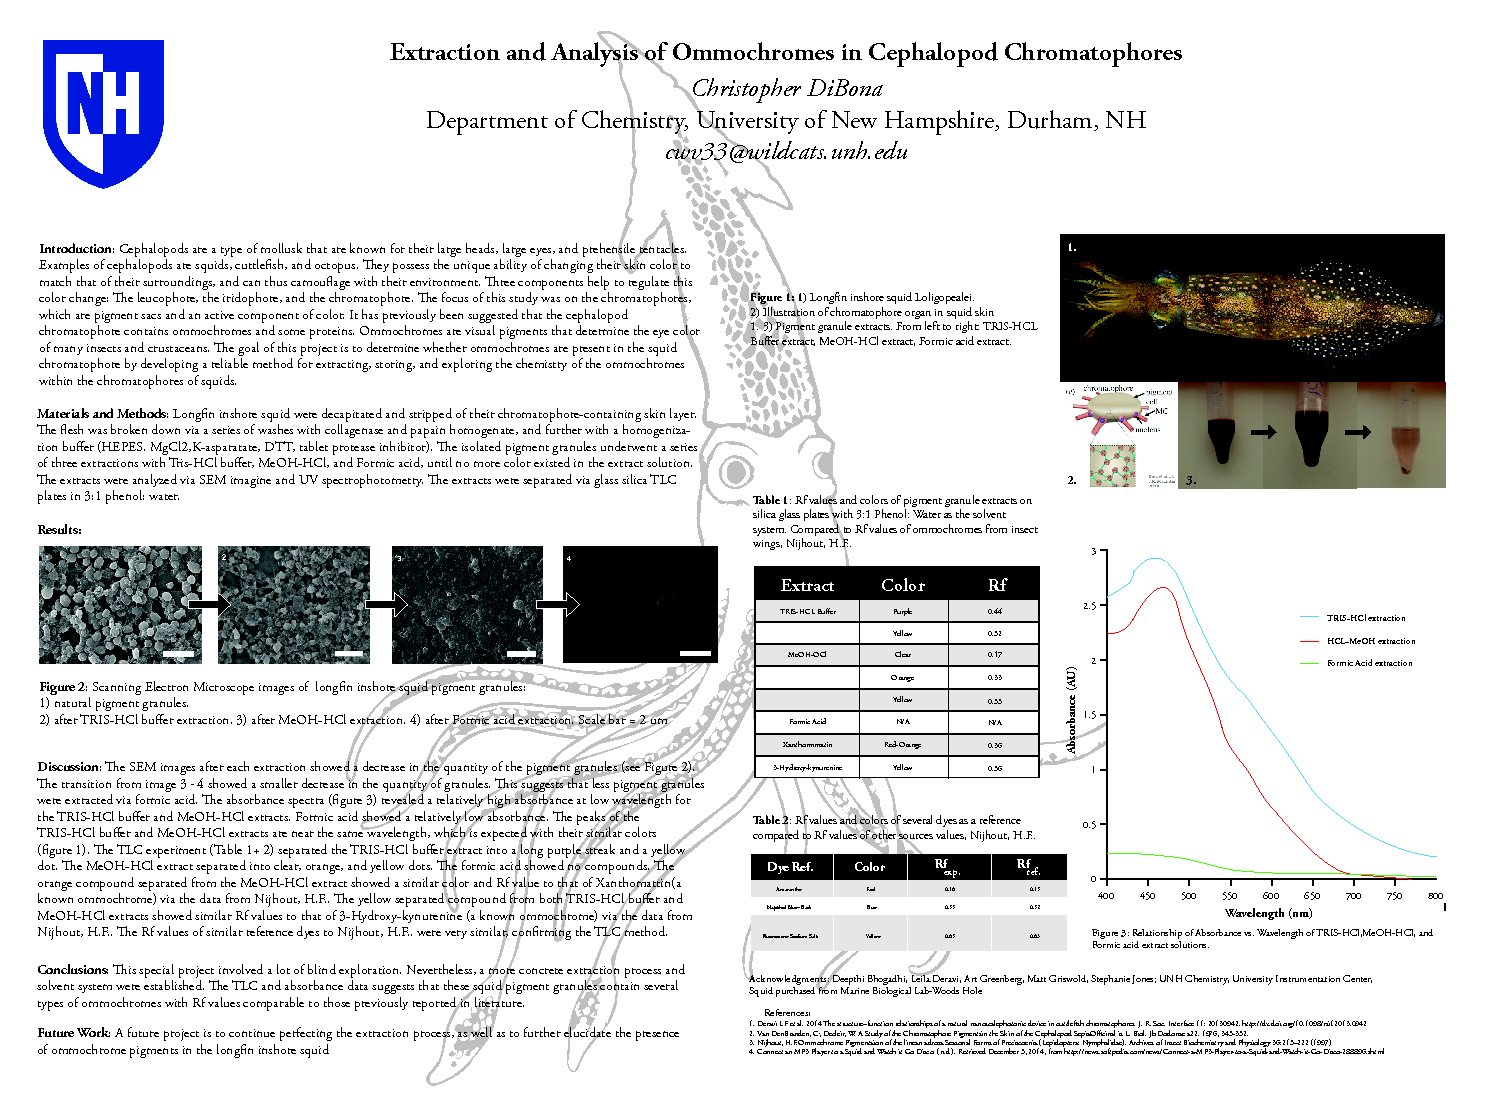 Extraction And Analysis Of Ommochromes In Cephalopod Chromatophores by cwv33